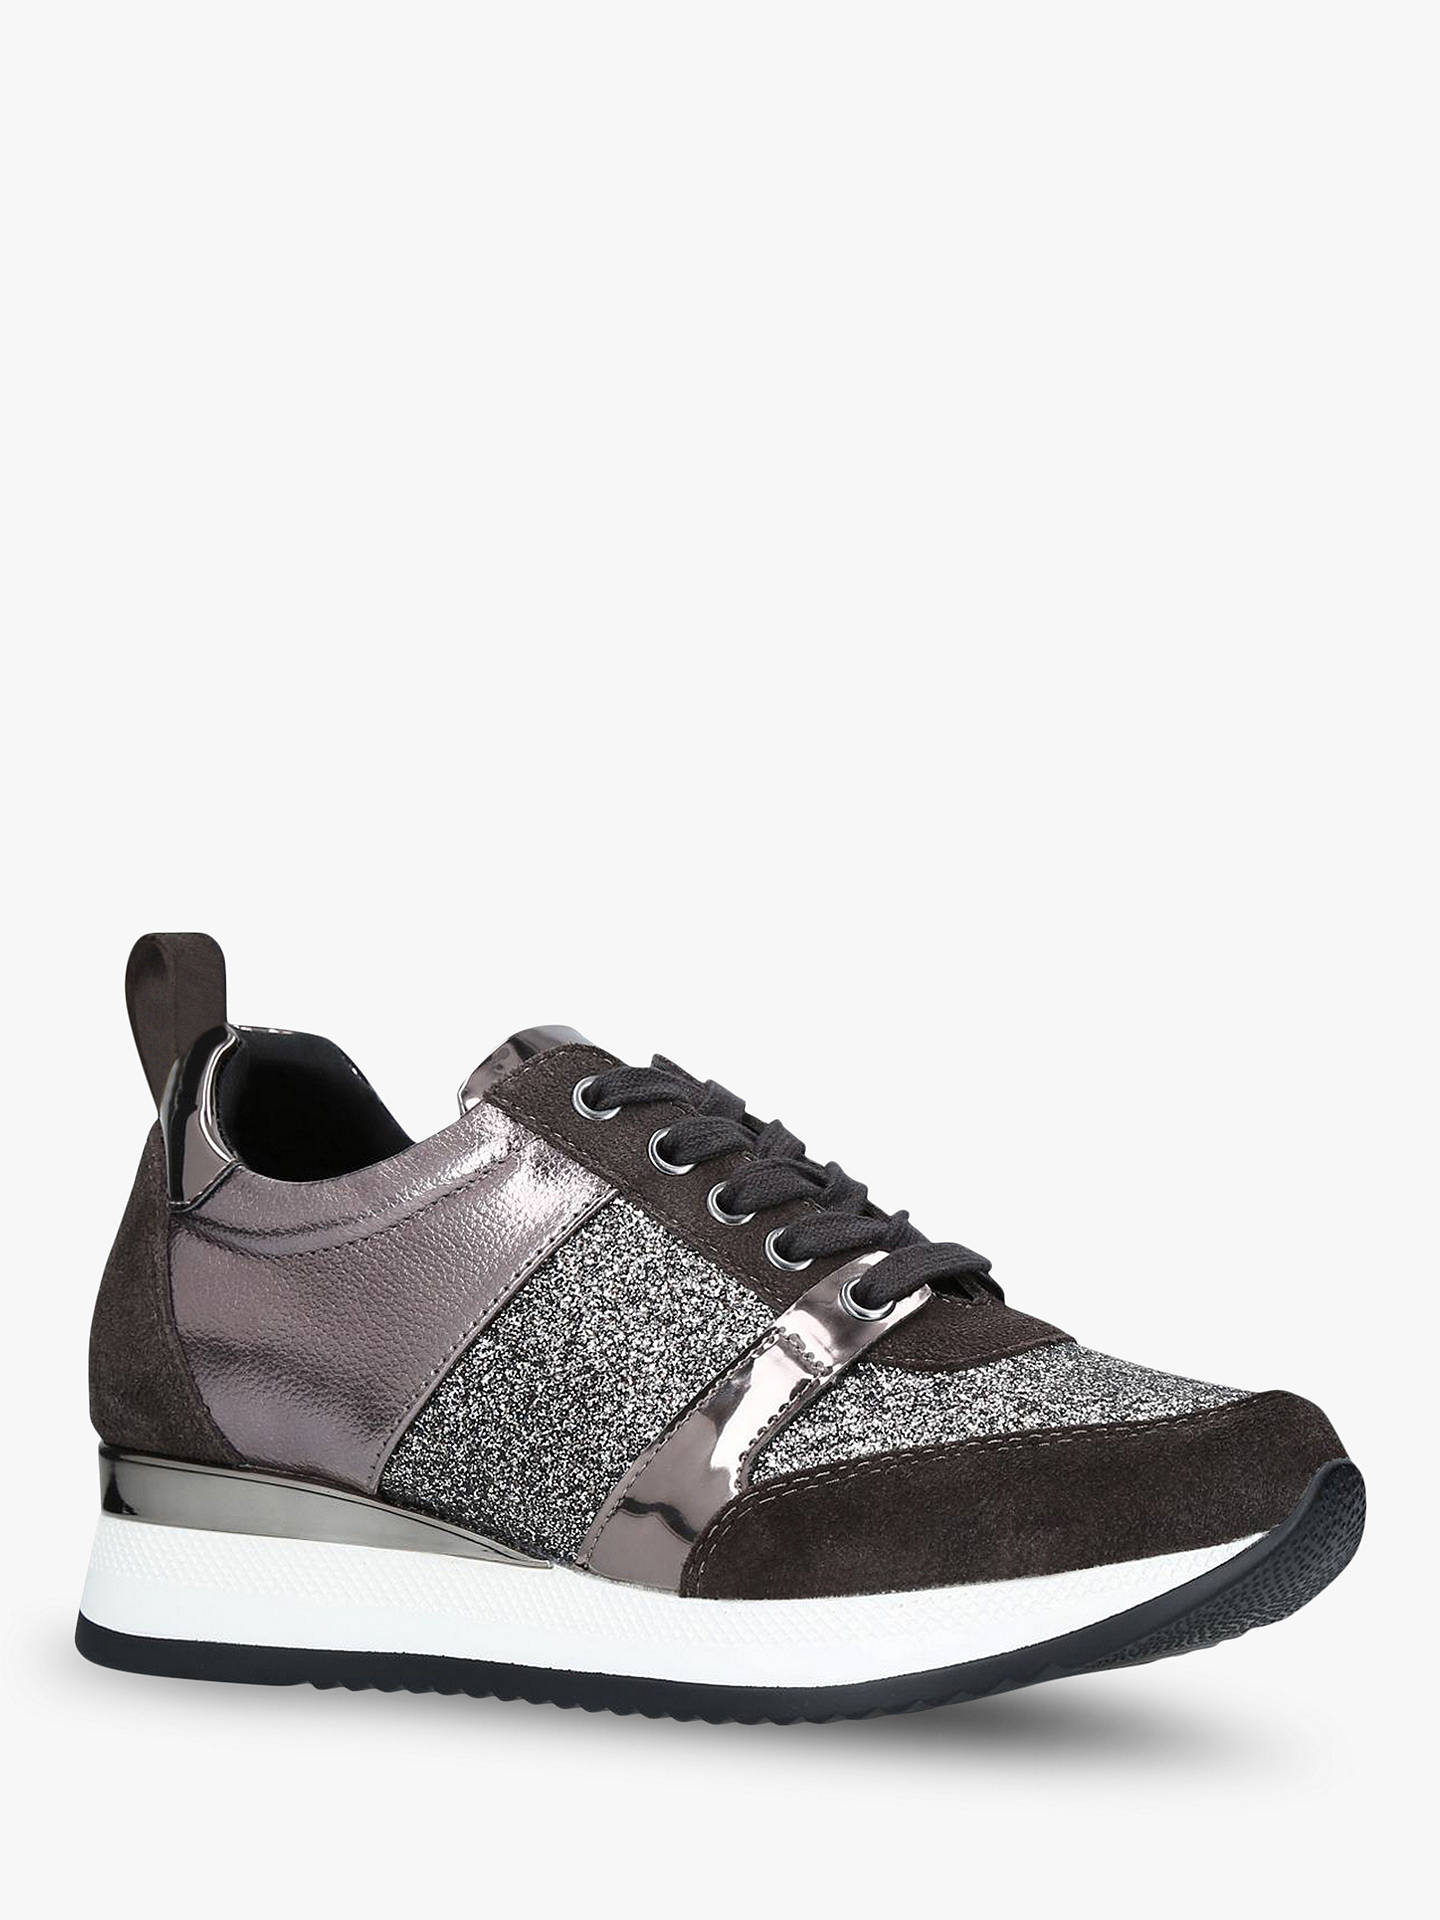 Buy Carvela Justified Trainers, Grey Leather, 3 Online at johnlewis.com